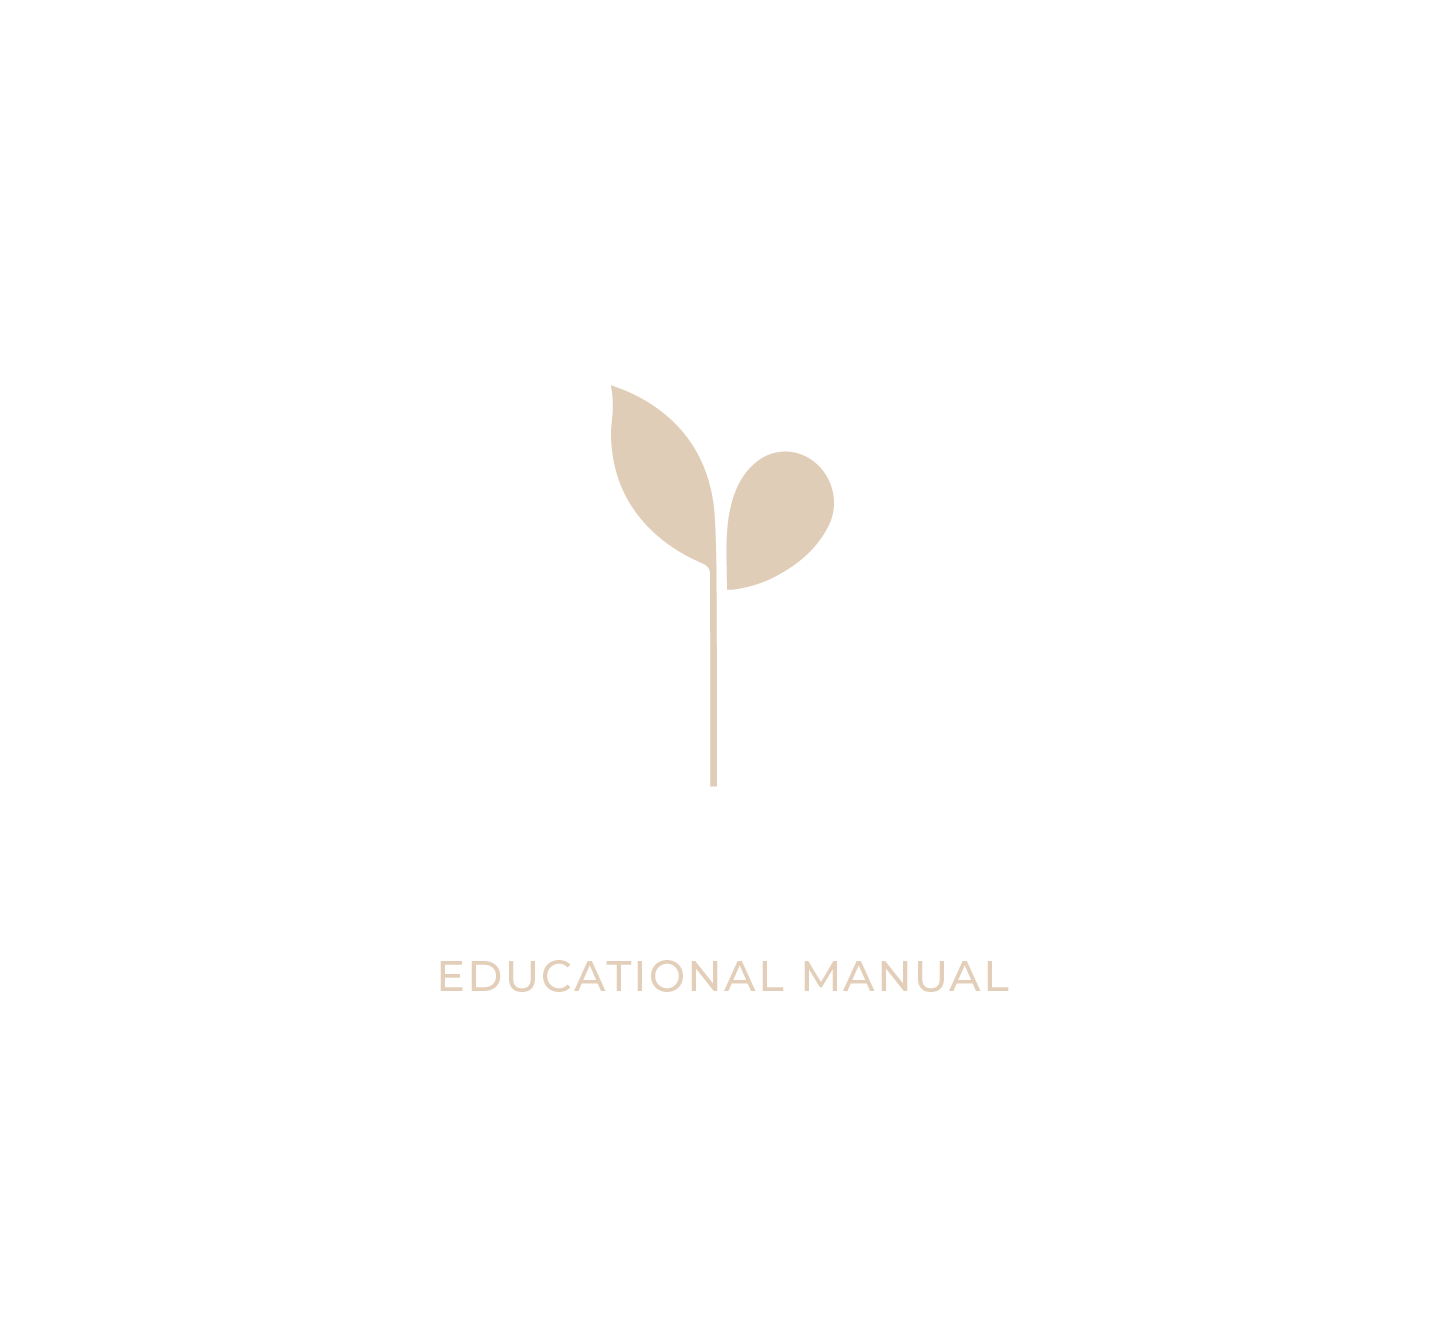 FREE Educational Manual for Opening Orders